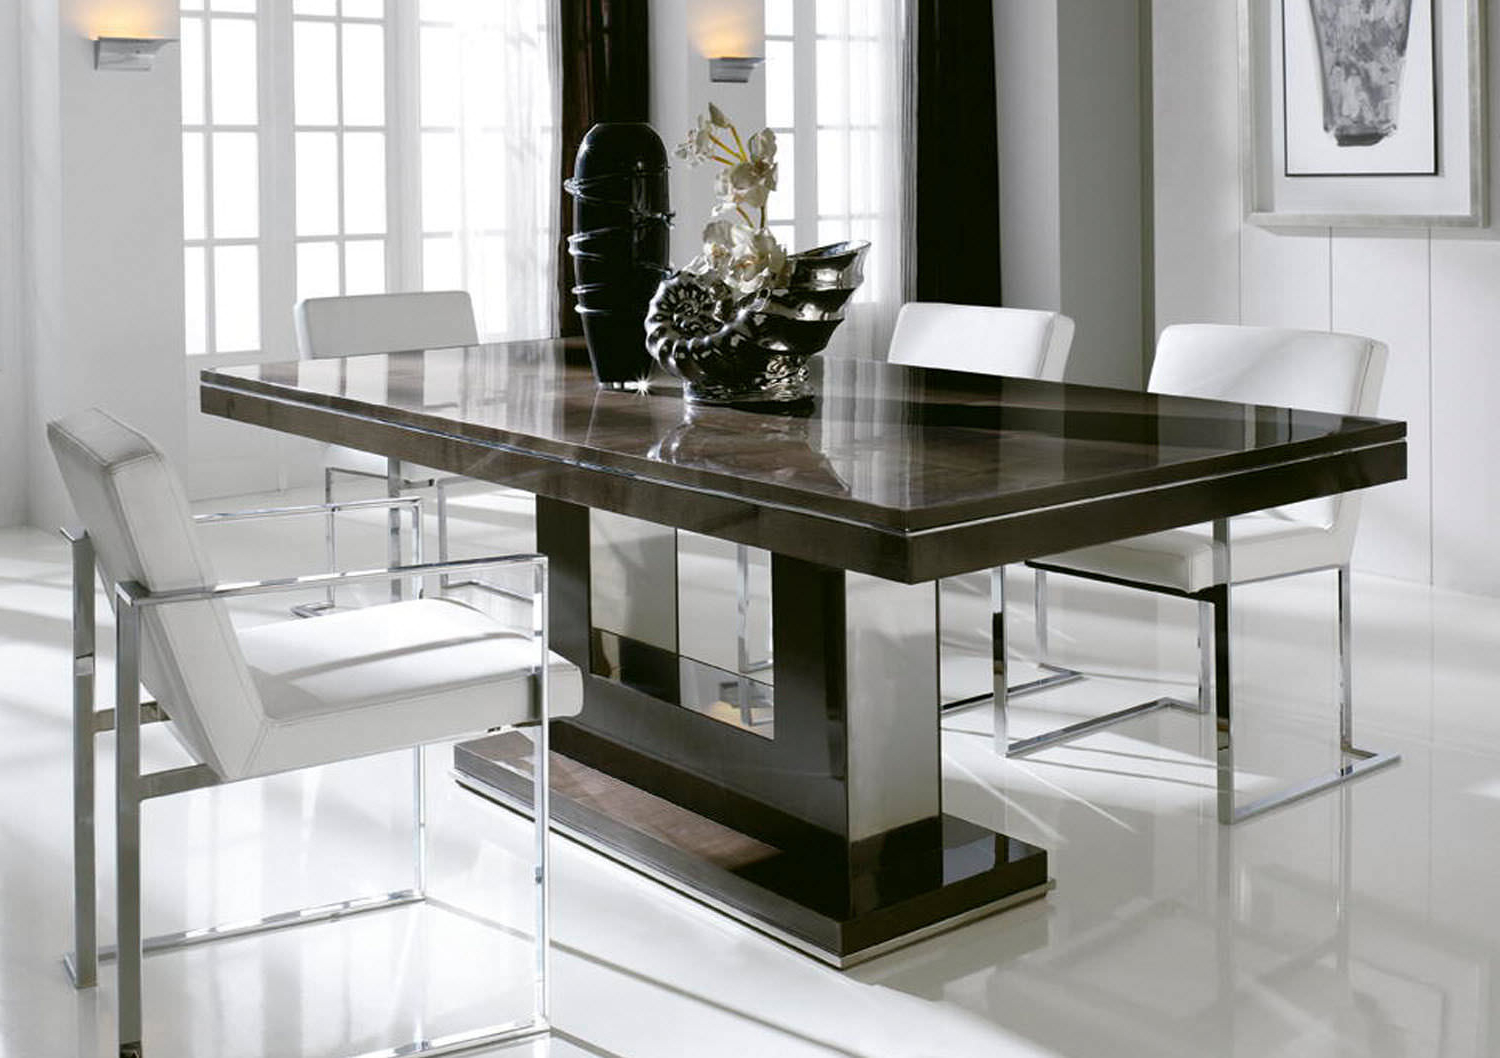 Contemporary Rectangular Dining Tables Intended For Well Liked Contemporary Dining Table / Wooden / Rectangular – Event (View 6 of 30)